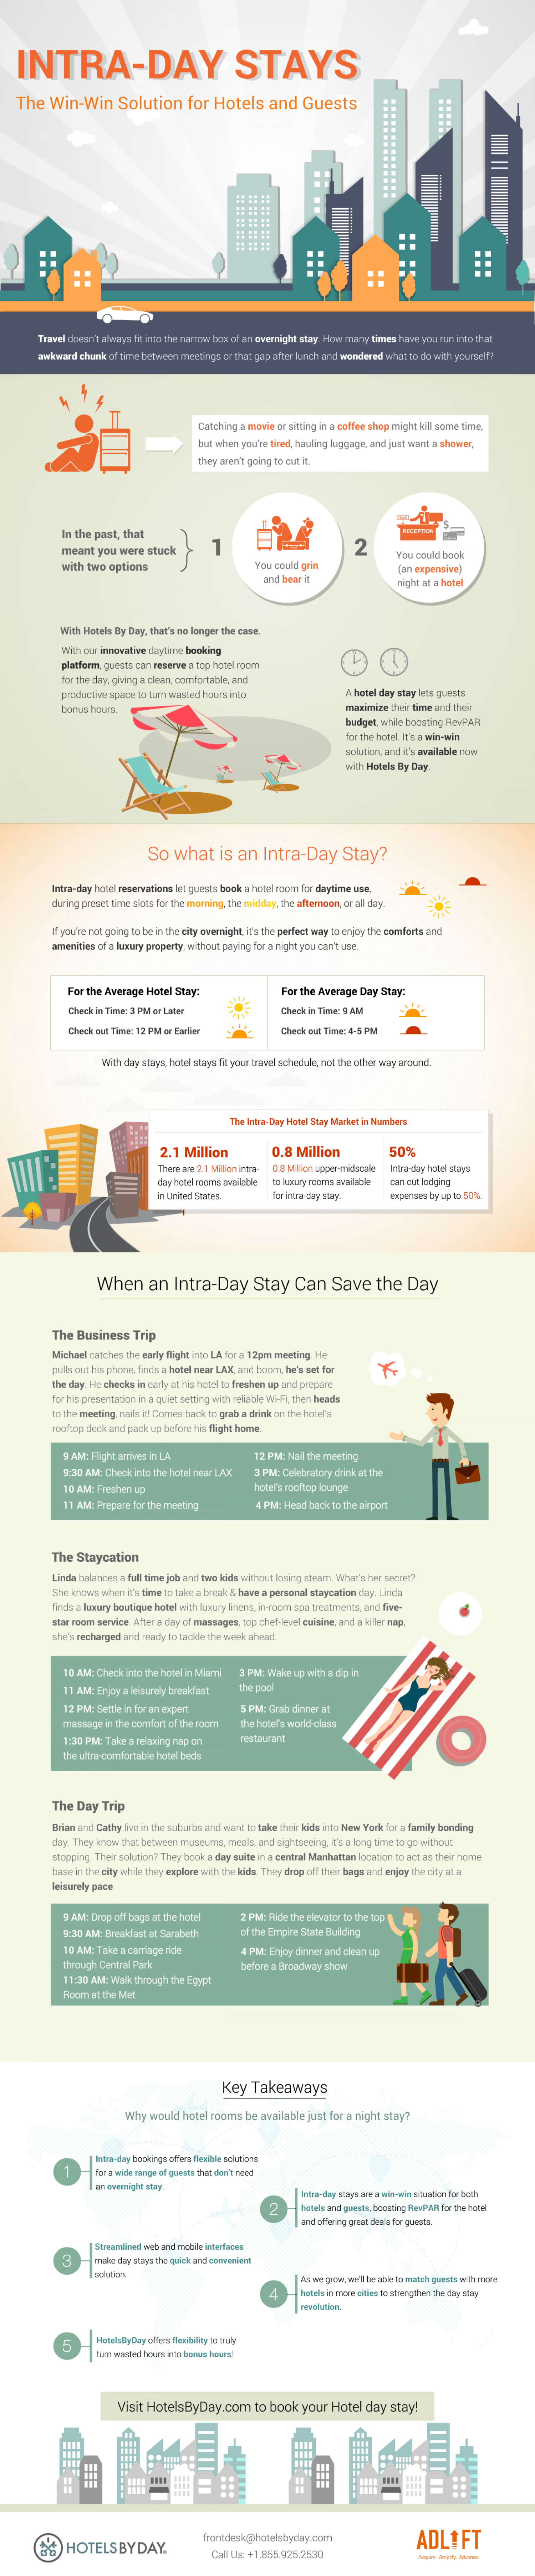 Intra-Day Stays: The Win-Win Solution for Hotels and Guests Infographic